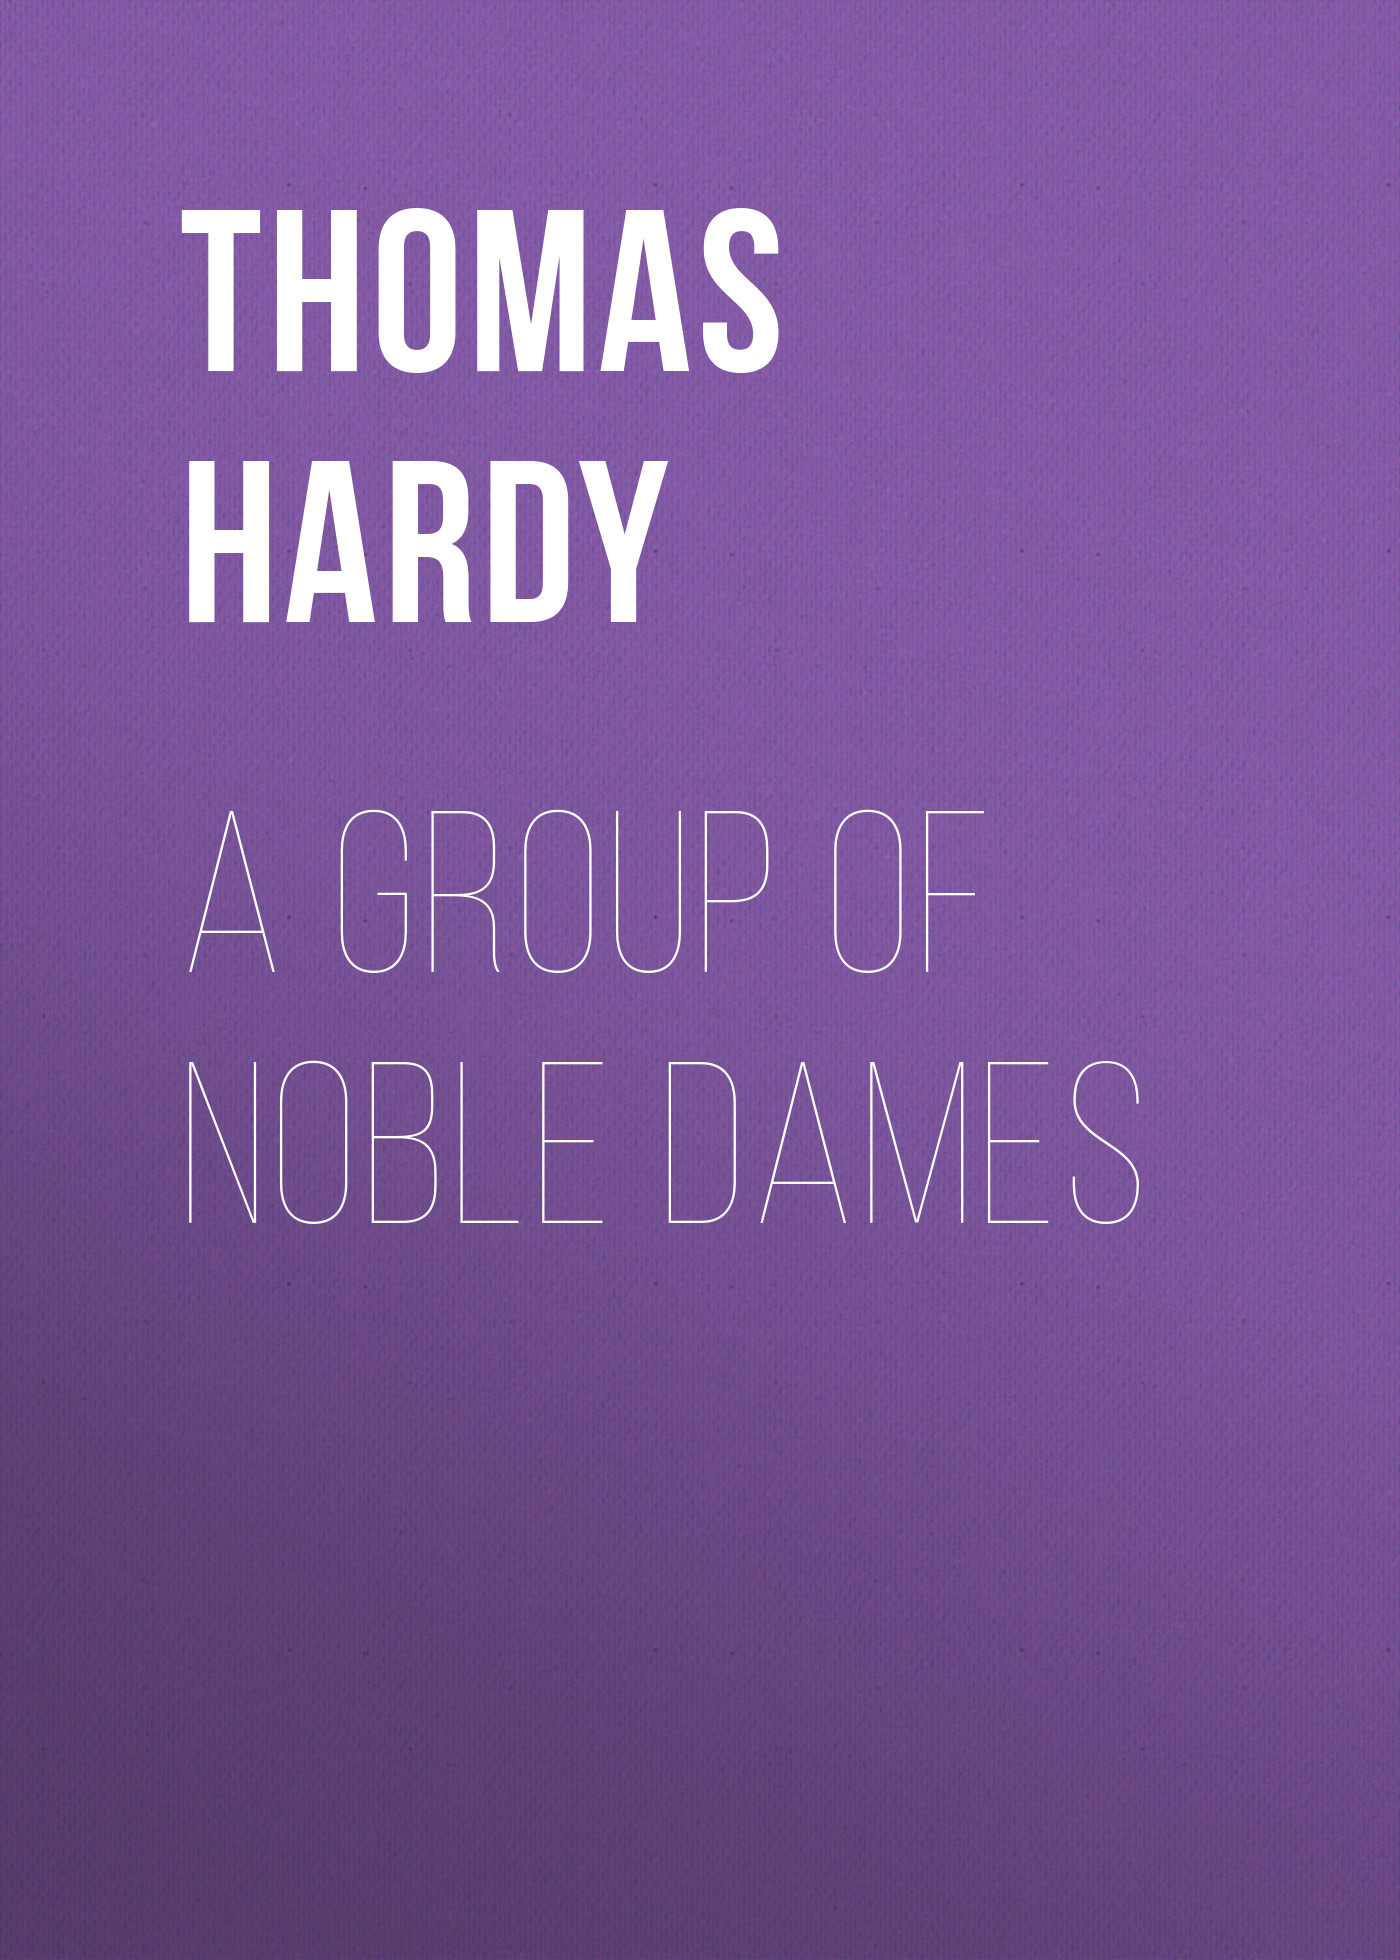 Thomas Hardy A Group of Noble Dames